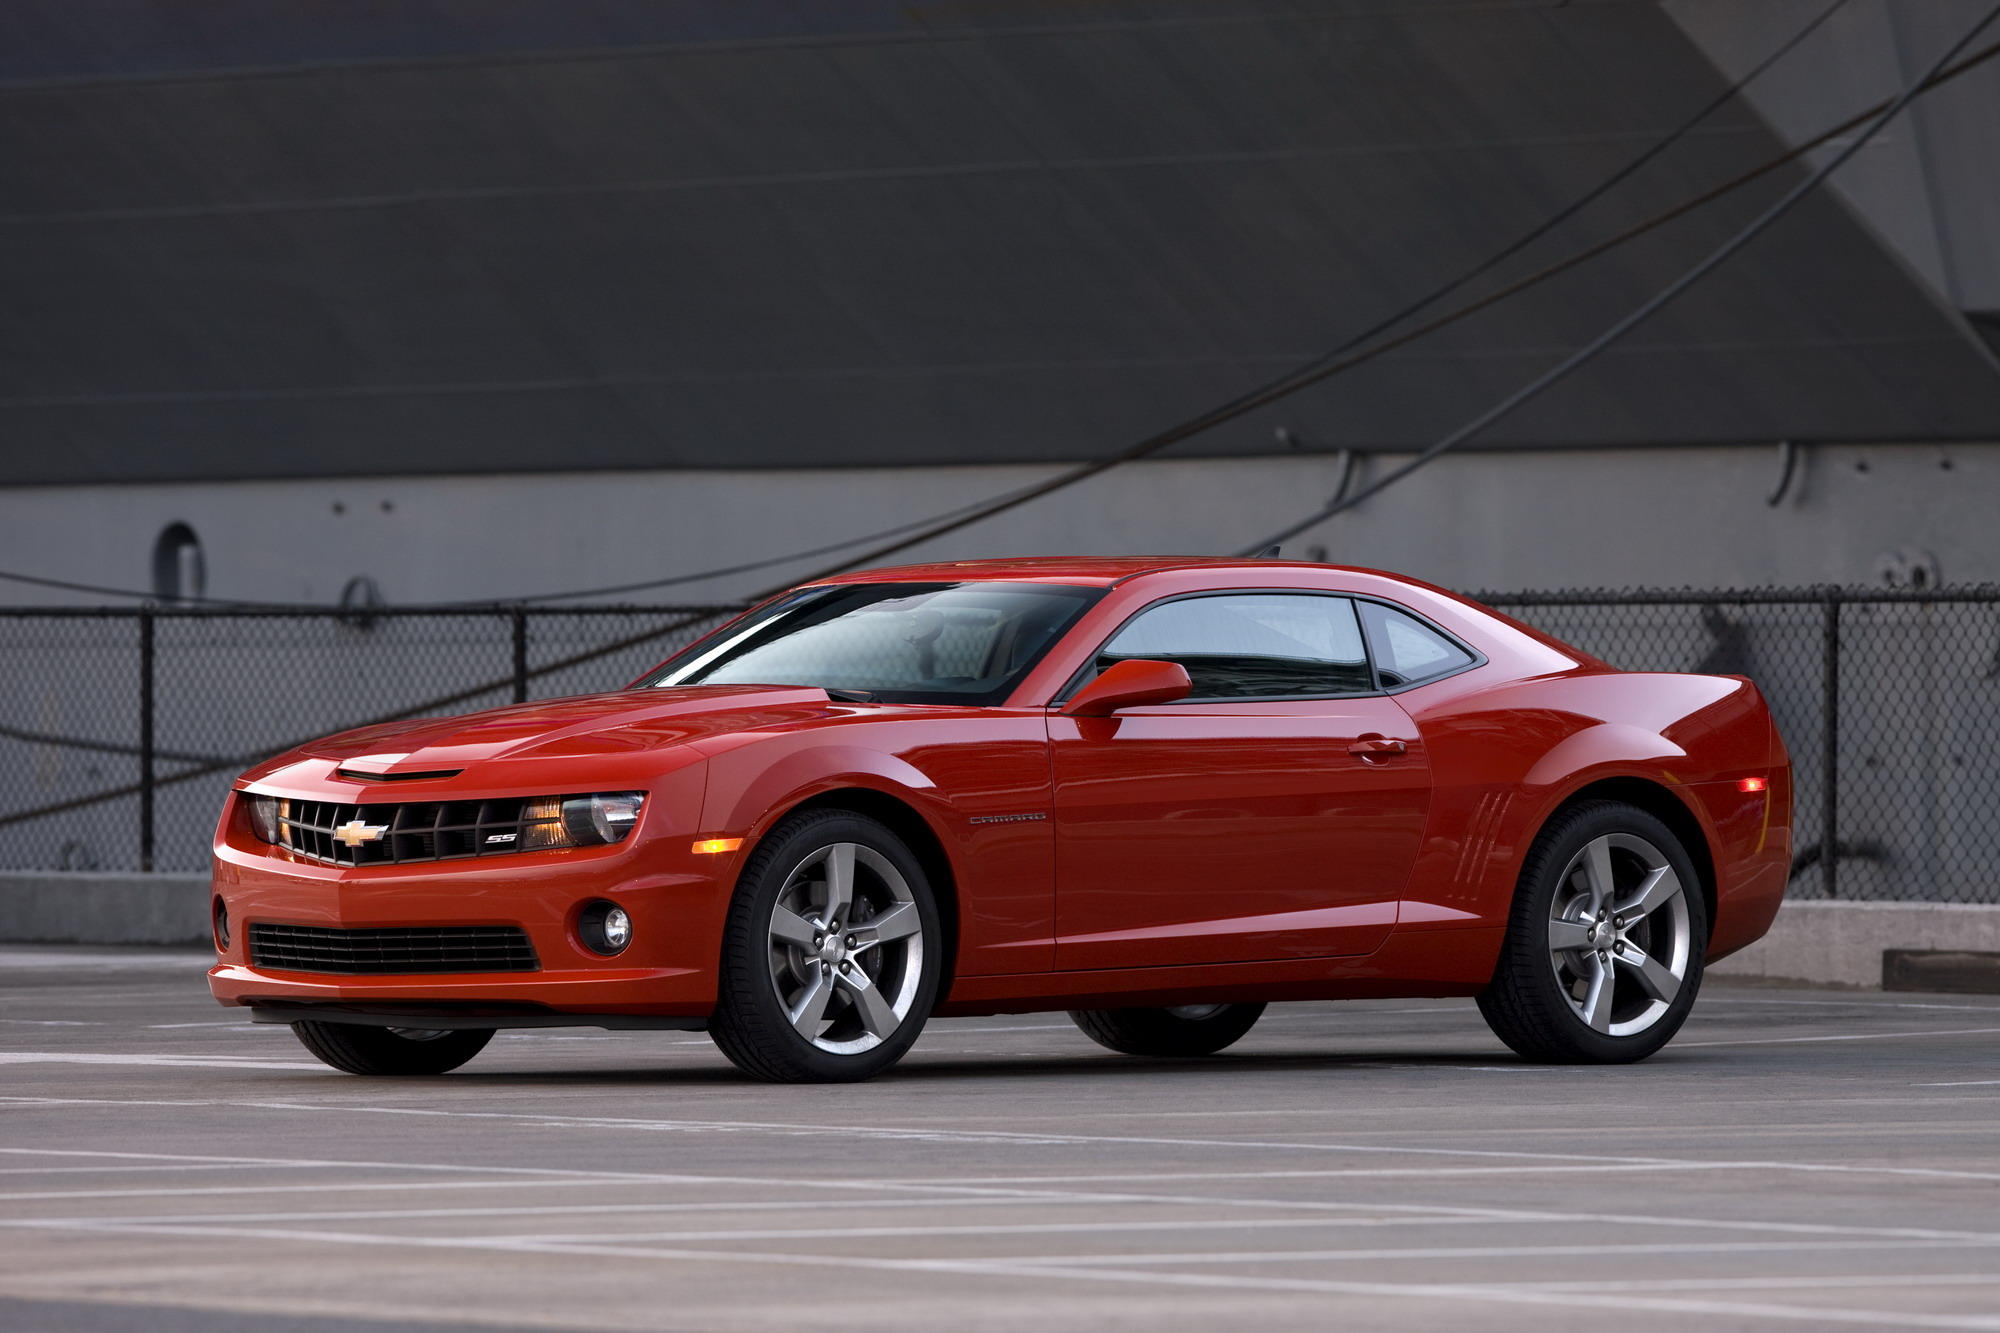 2011 Chevrolet Camaro Review - Top Speed